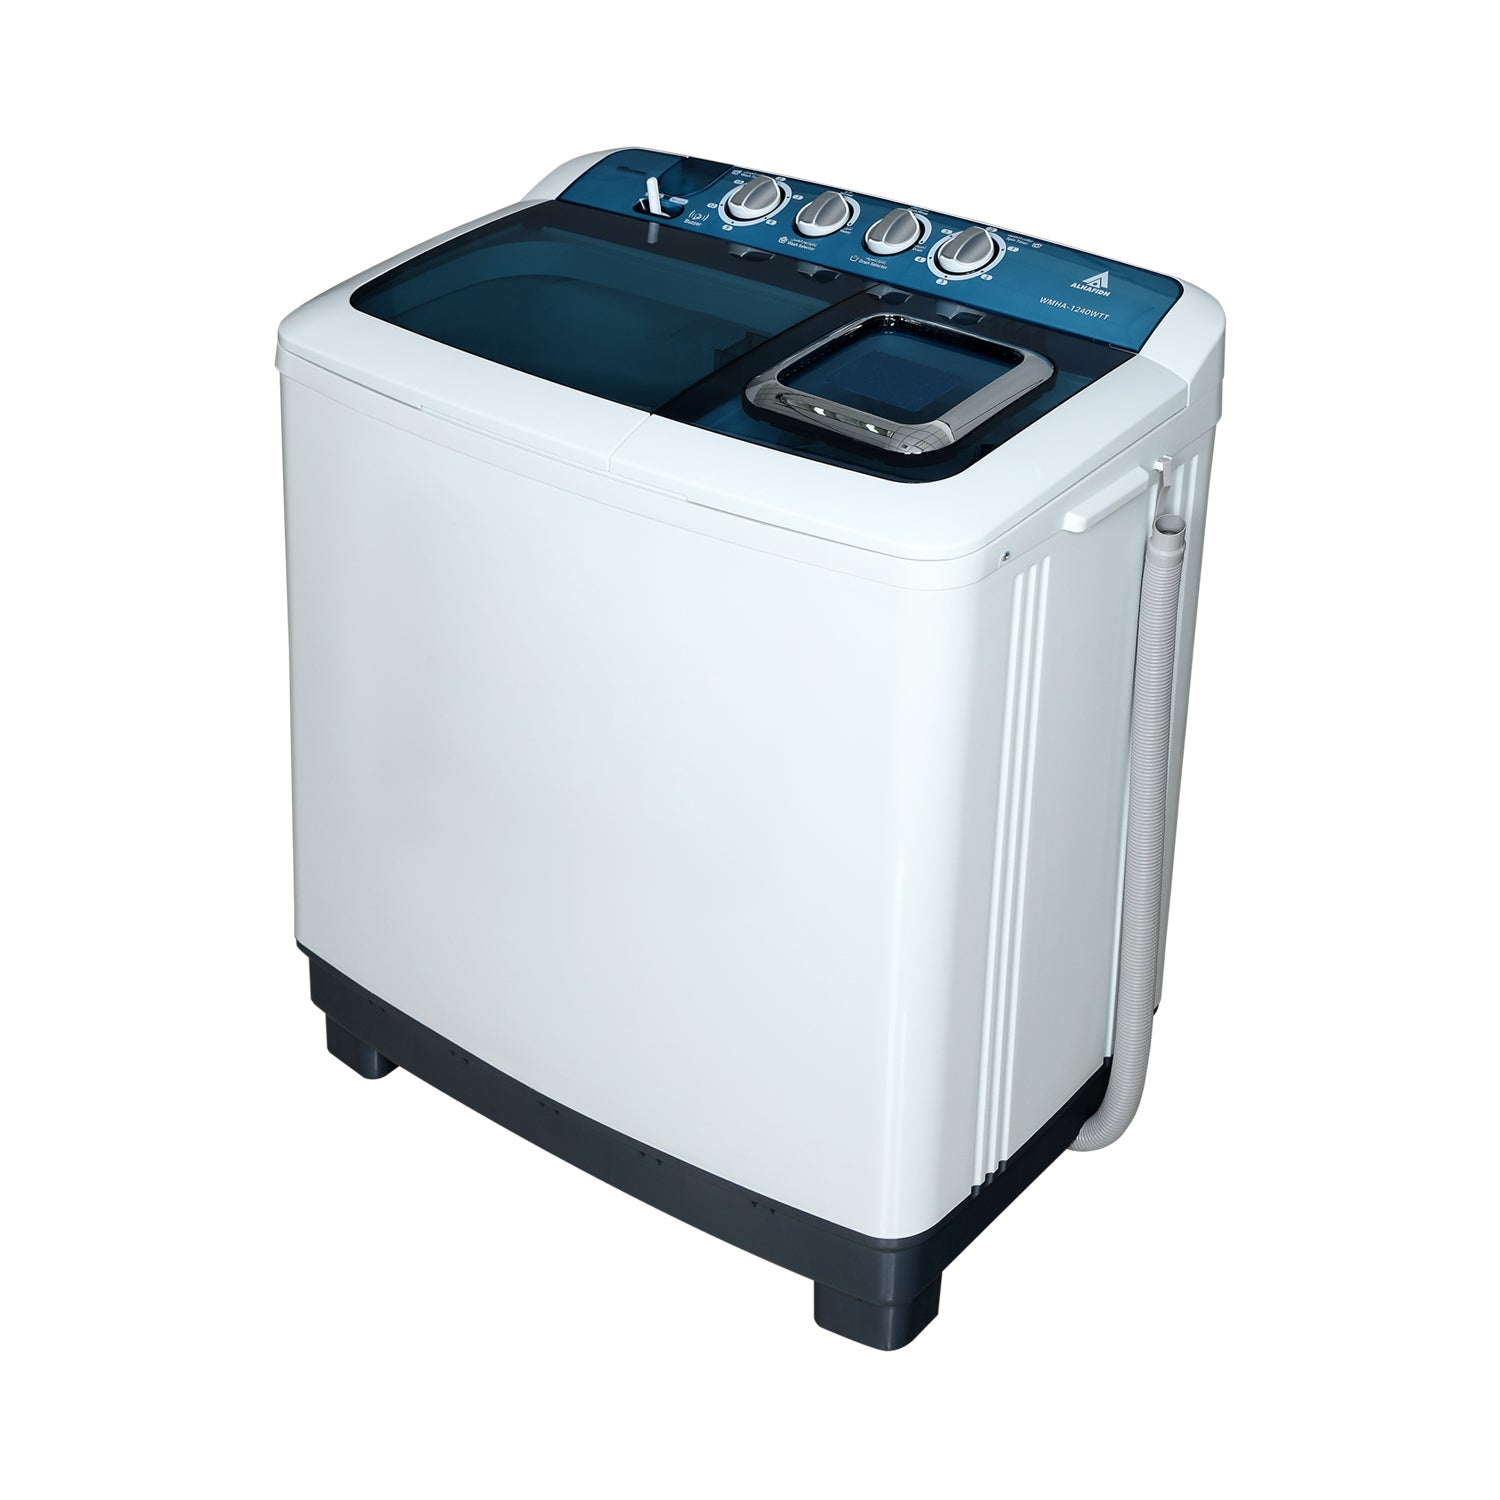 ALHAFIDH 12KG Twin Tub Washing Machine WMHA-1240WTT